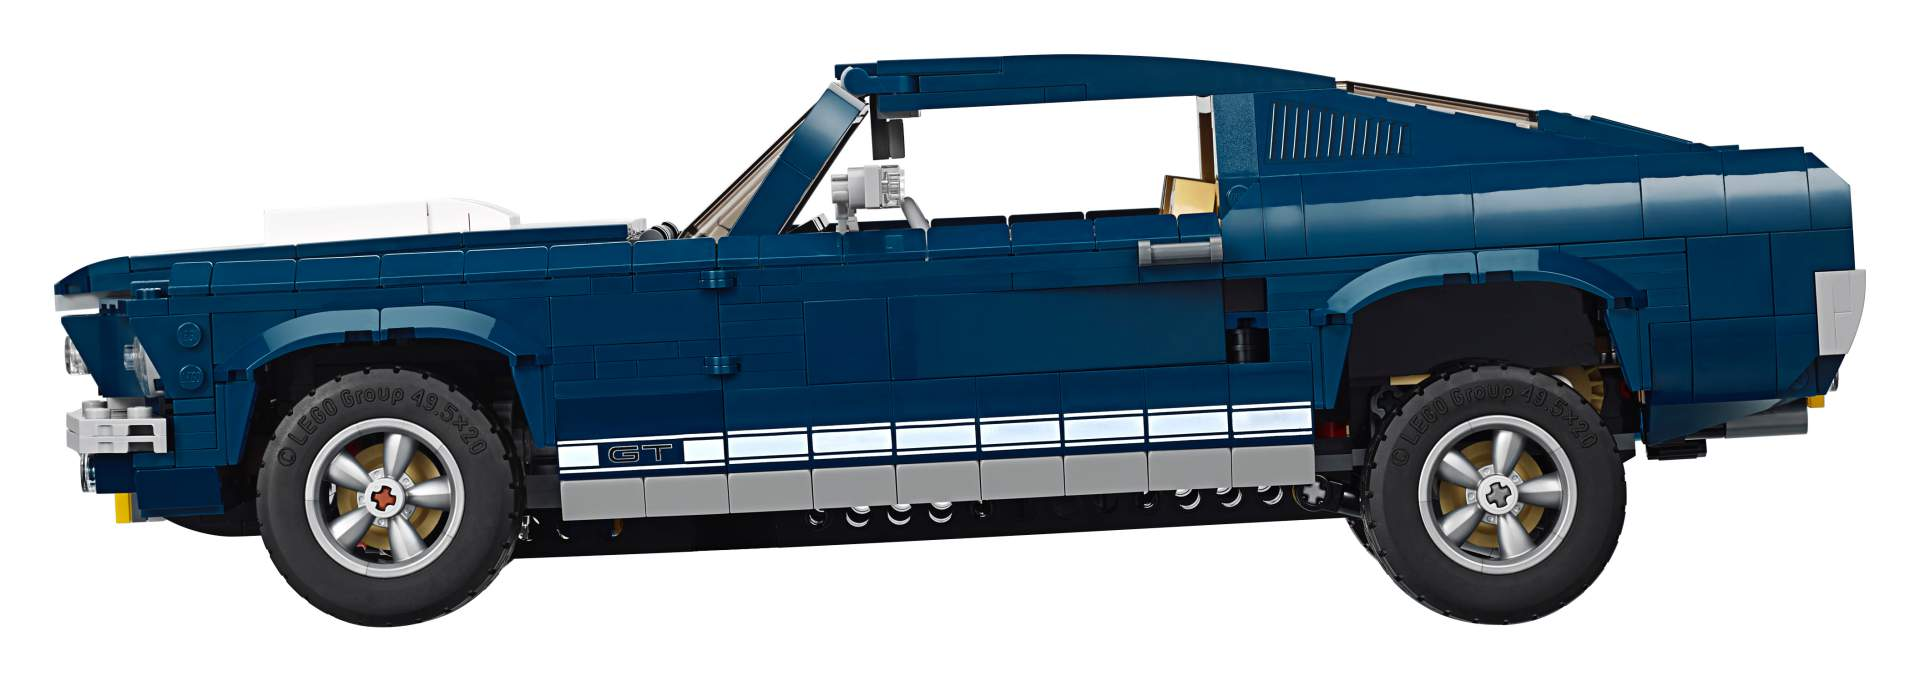 Ford Mustang GT 1967 Lego Creator Set (7)